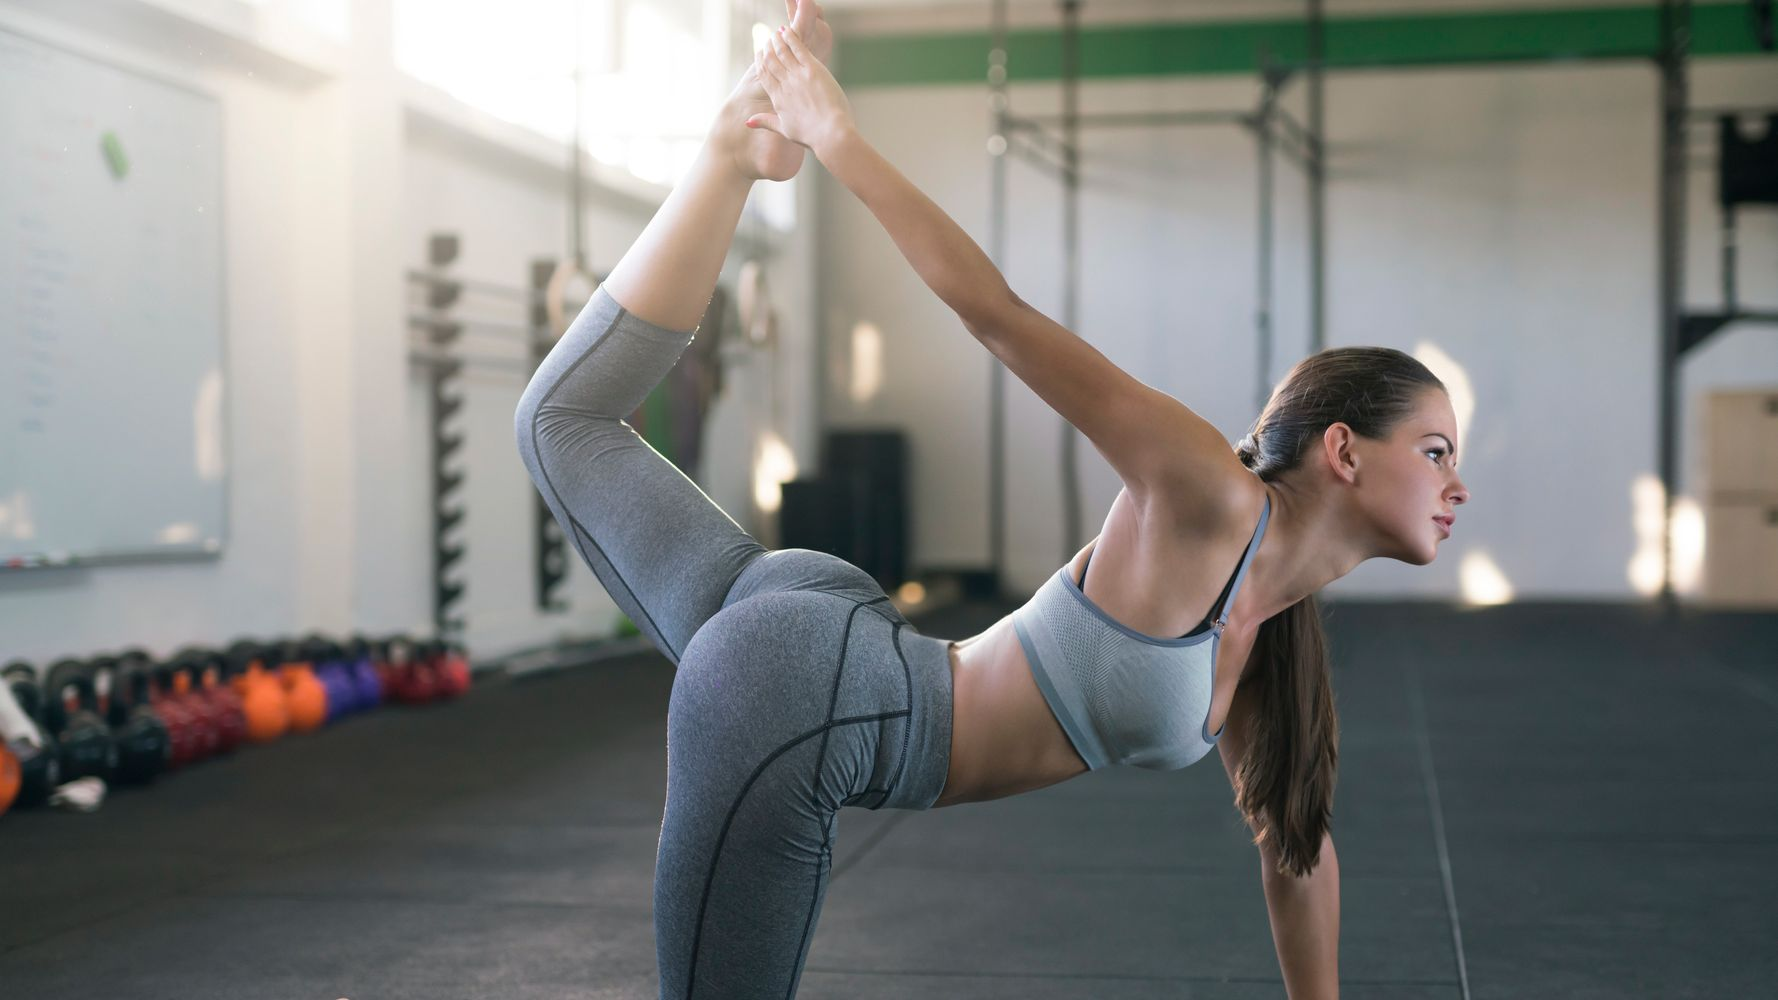 Girls in panties lifting weights Should You Be Wearing Underwear With Your Workout Leggings Huffpost Life